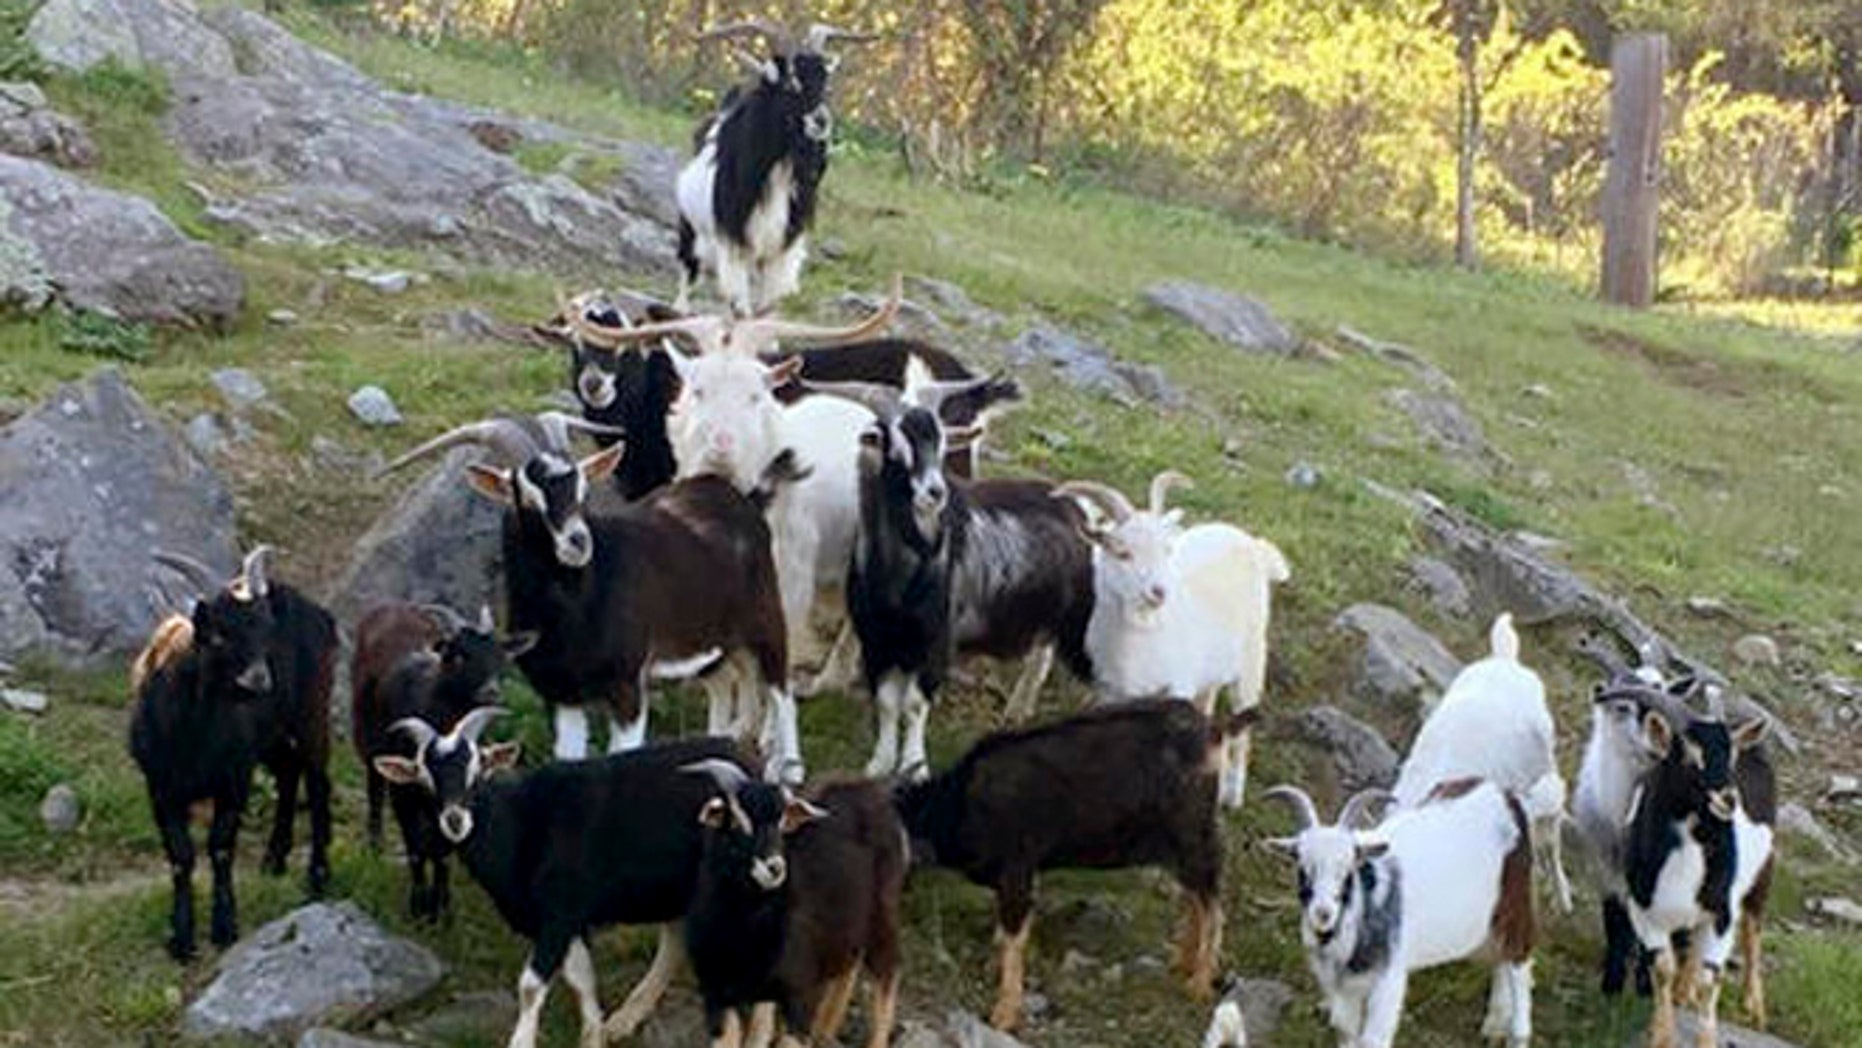 This May 2016 photo provided by the MSPCA-Nevins Farm in Methuen, Mass., shows some of nearly 50 goats voluntarily turned over by an owner in Montague, Mass., who couldn't handle the growing herd.